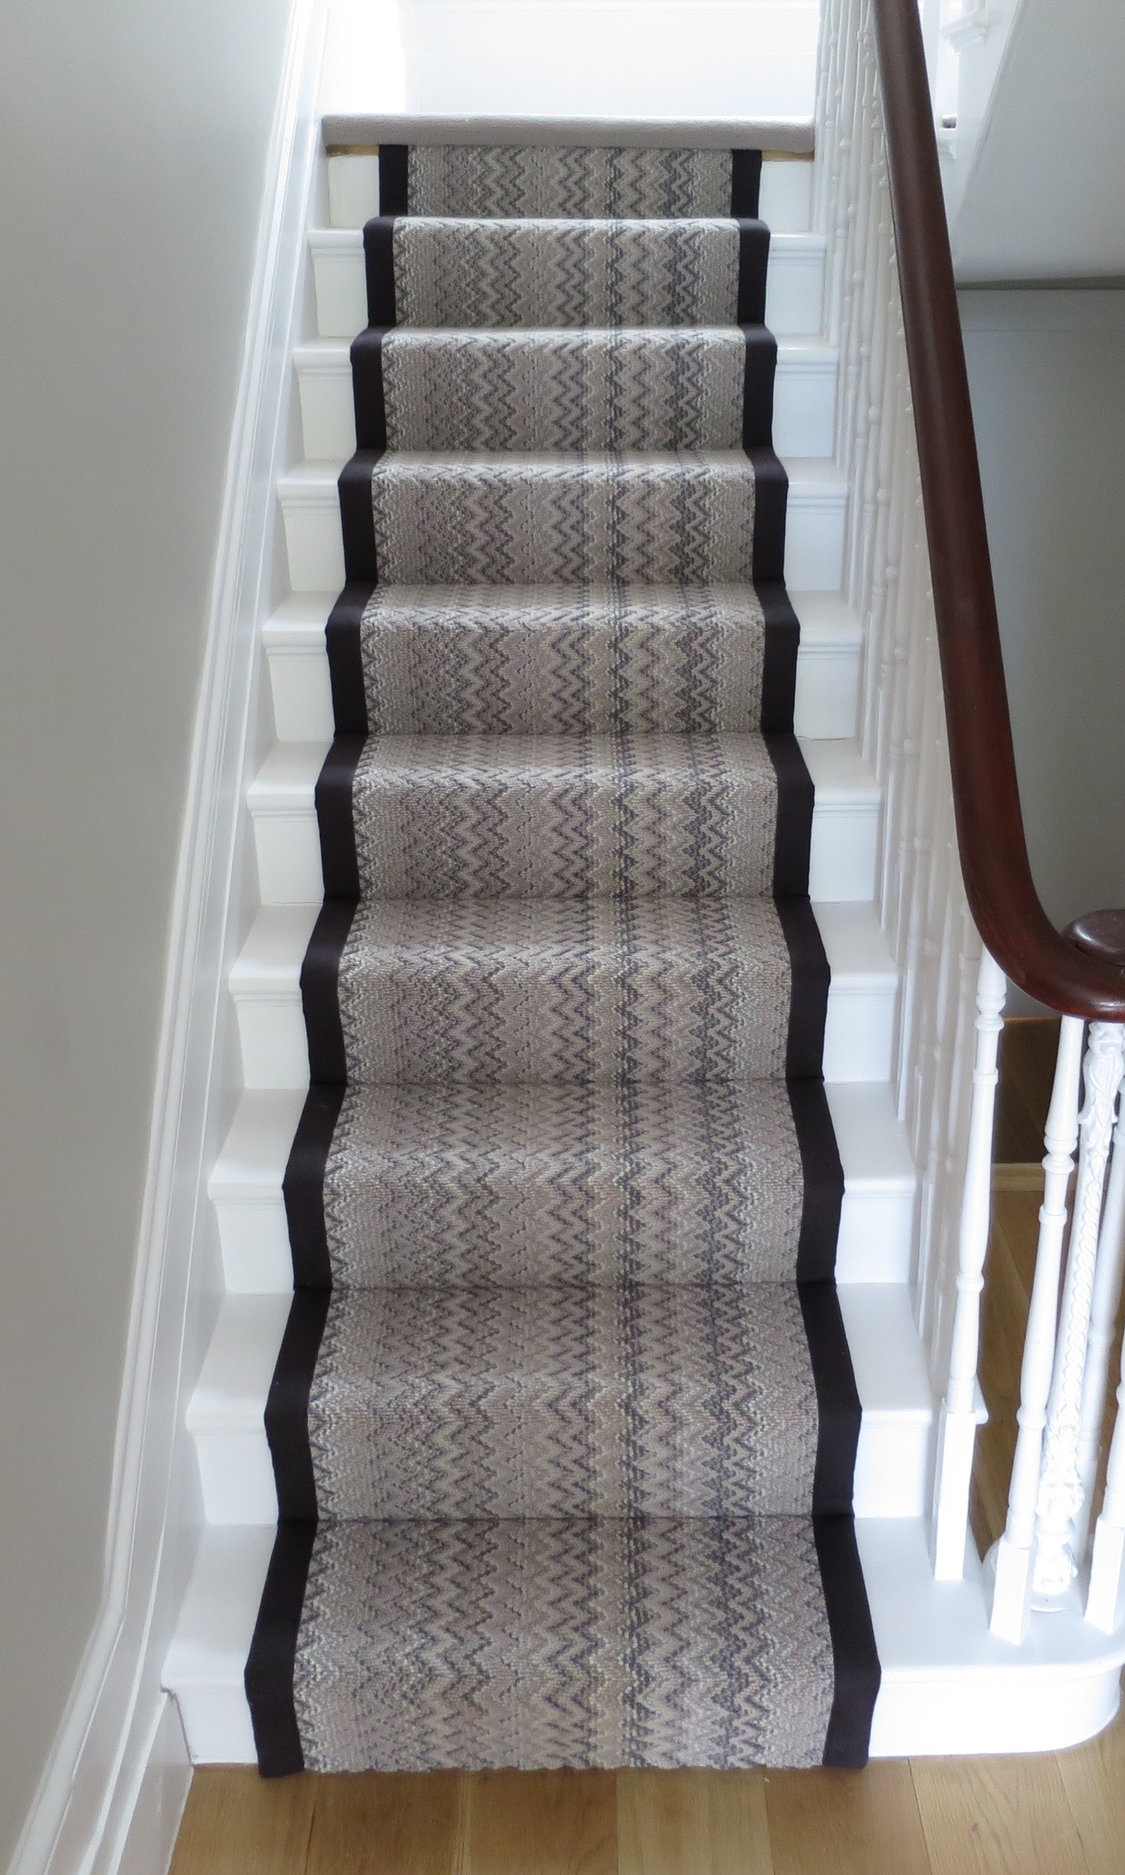 Bespoke Stair Runners - We offer a fully bespoke runner program on the majority of our ranges with custom sizes and edgings (such as binding and whipping) to suit any home.